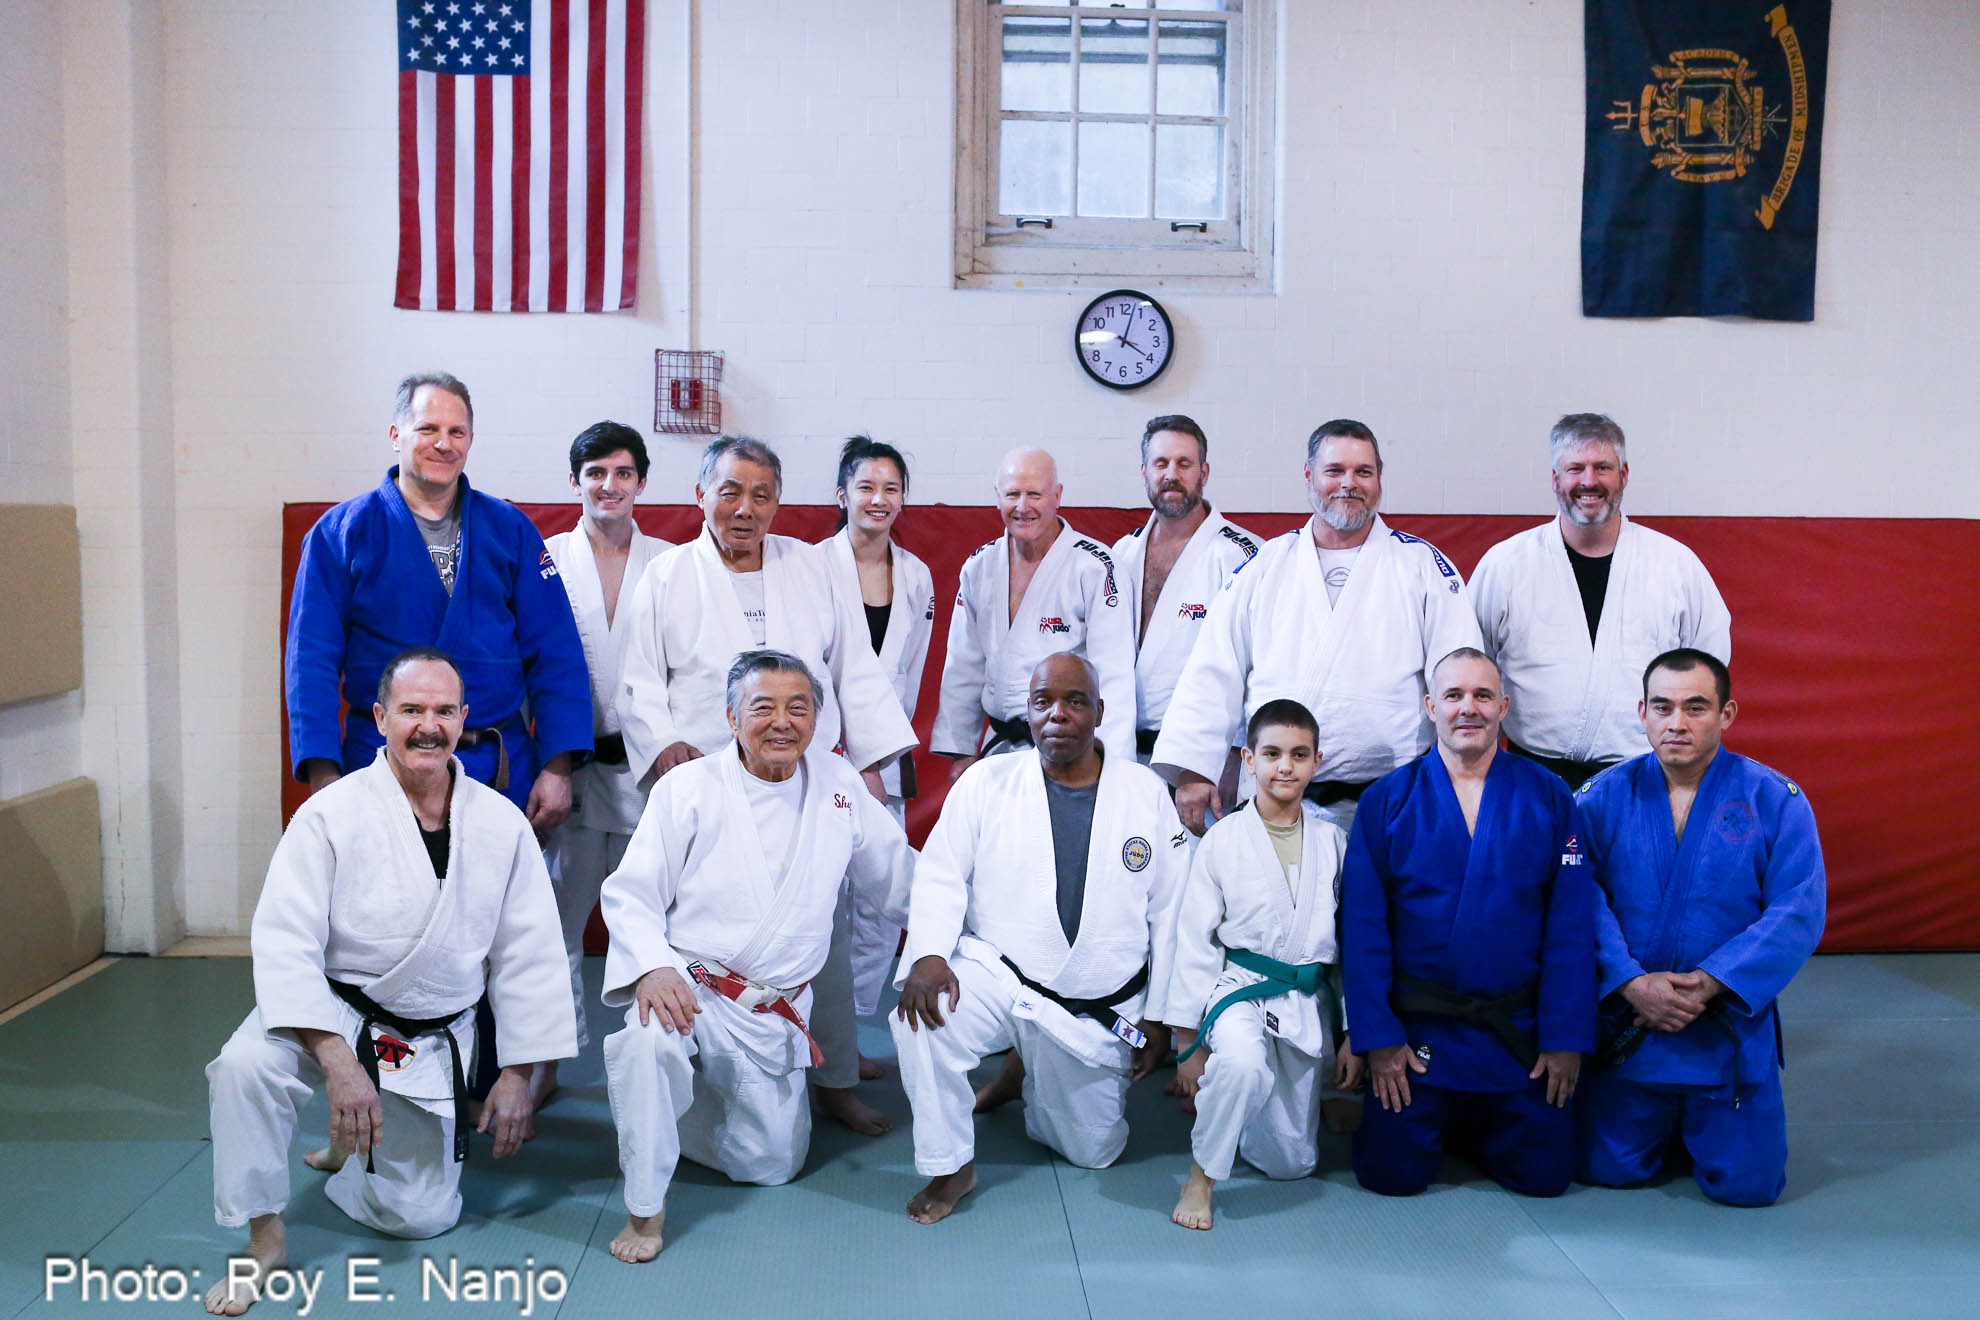 Roy Nanjo's Photos from the USNA Dick Hugh Competitor